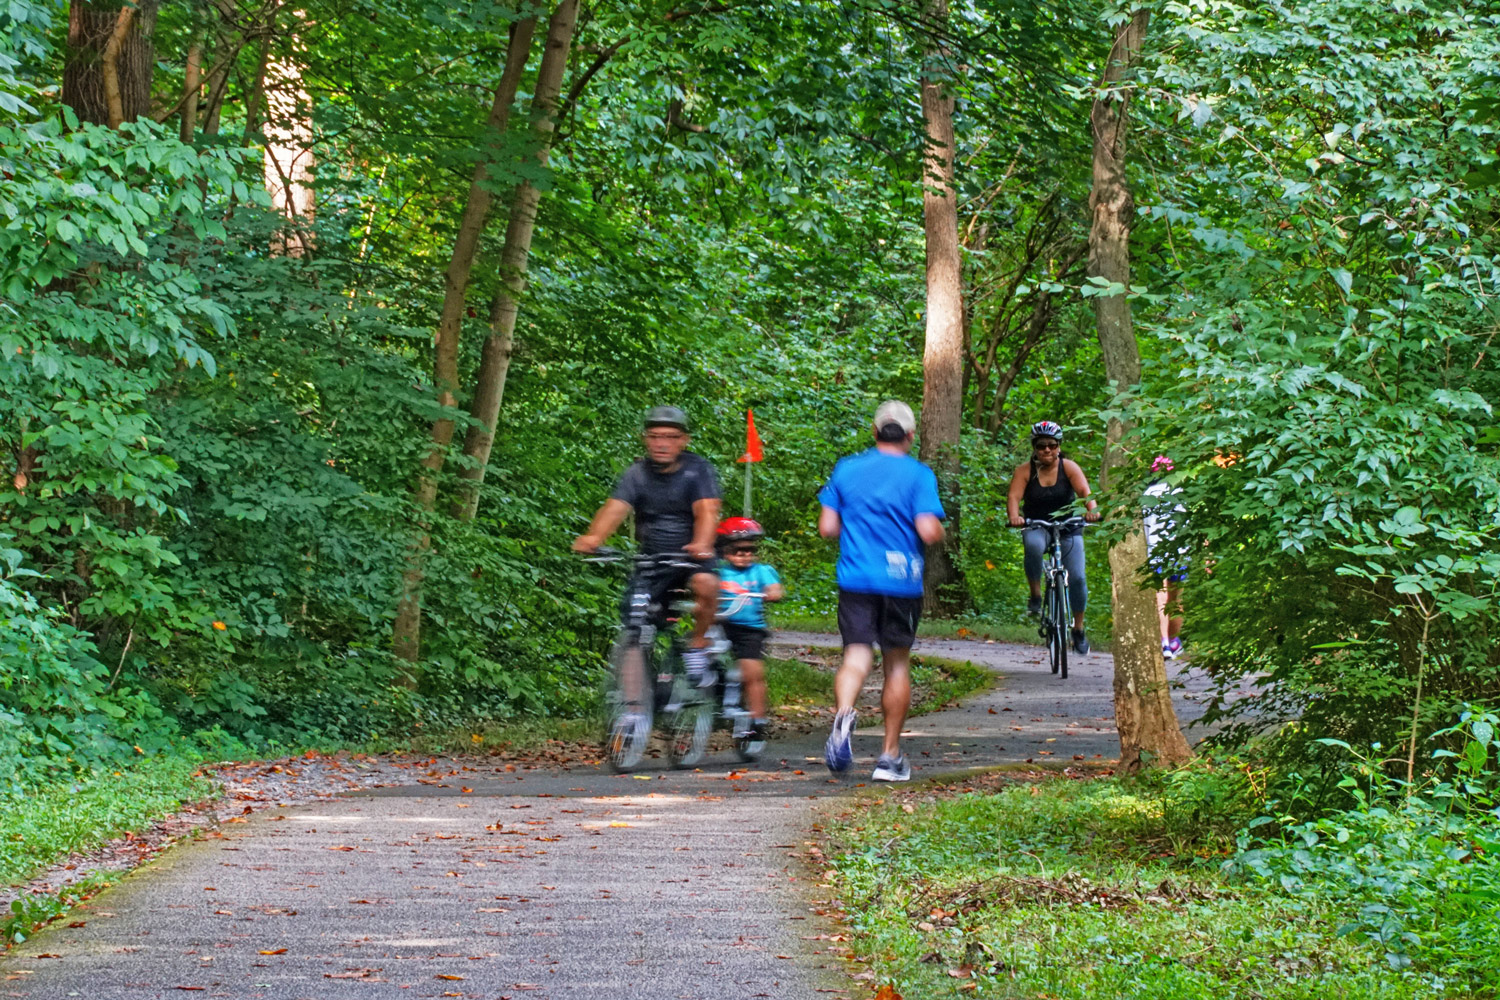 7-mile paved Sligo Creek Trail 5 Minutes from Liberty Place Apartments